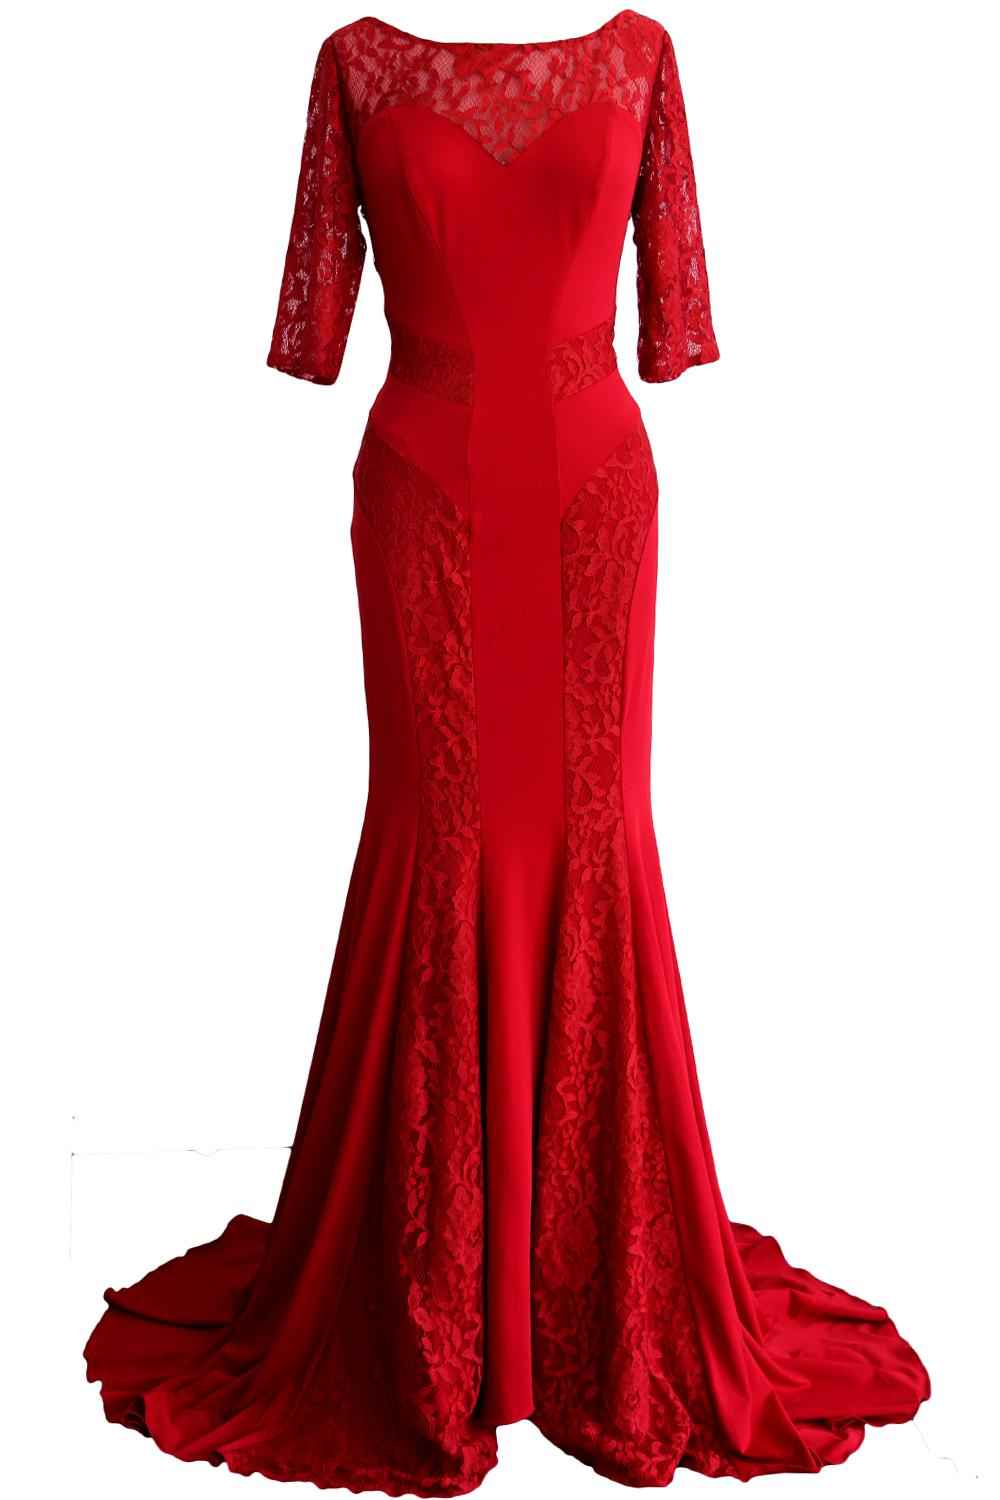 c4a24c1cf57e Cheap Simple One Piece Gowns Discount Pictures Nigerian Chiffon Gowns